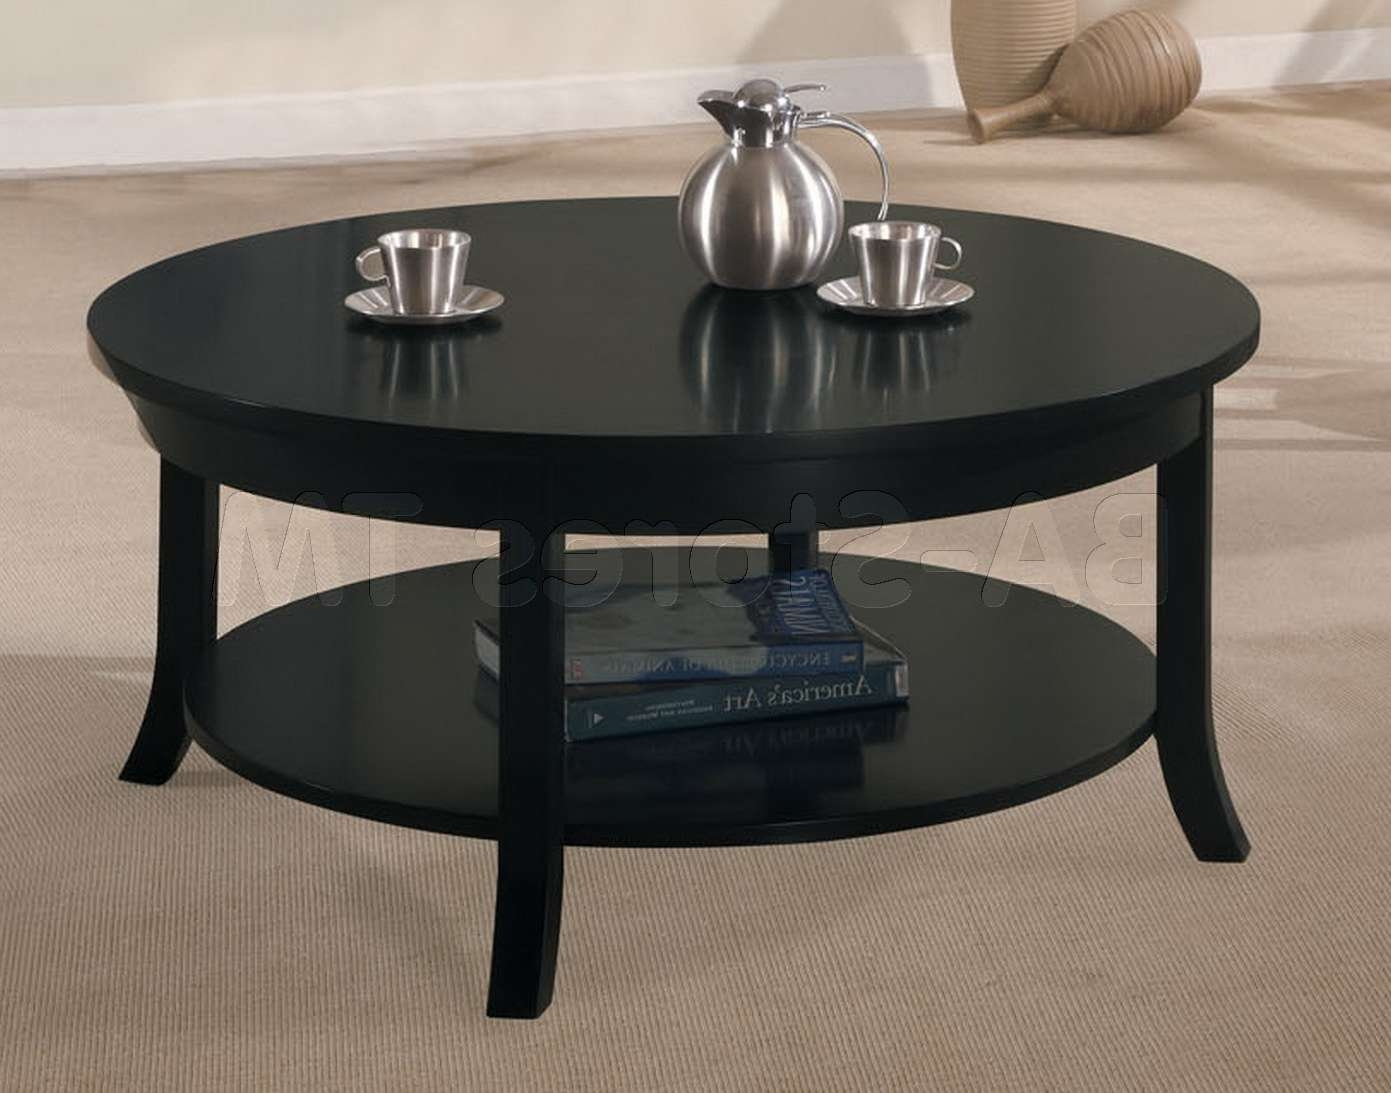 Newest Black Coffee Tables Intended For Coffee Table : Black Coffee And End Table Sets Kit4En Com Round (View 15 of 20)